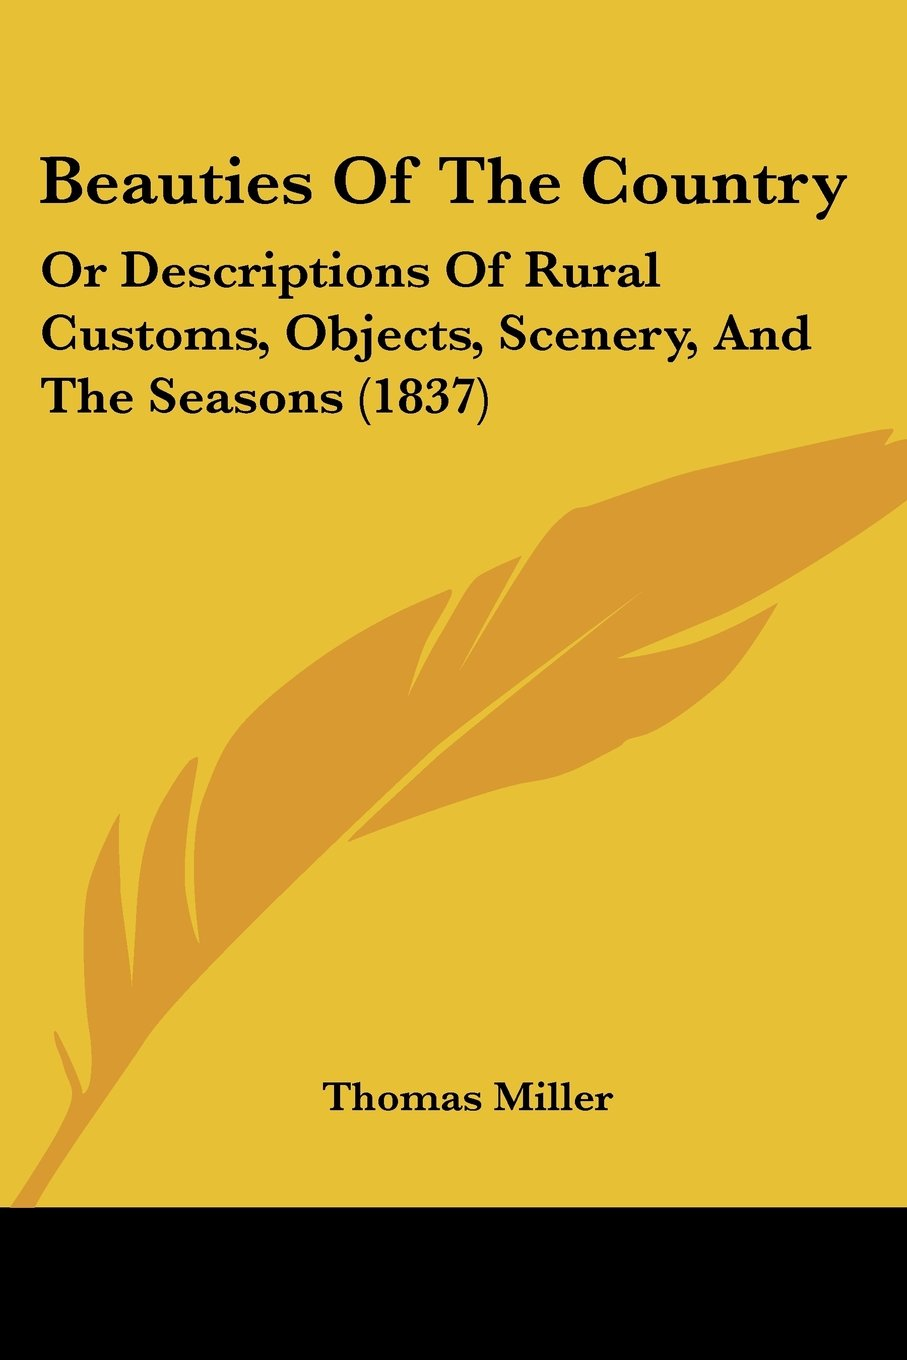 Download Beauties Of The Country: Or Descriptions Of Rural Customs, Objects, Scenery, And The Seasons (1837) PDF